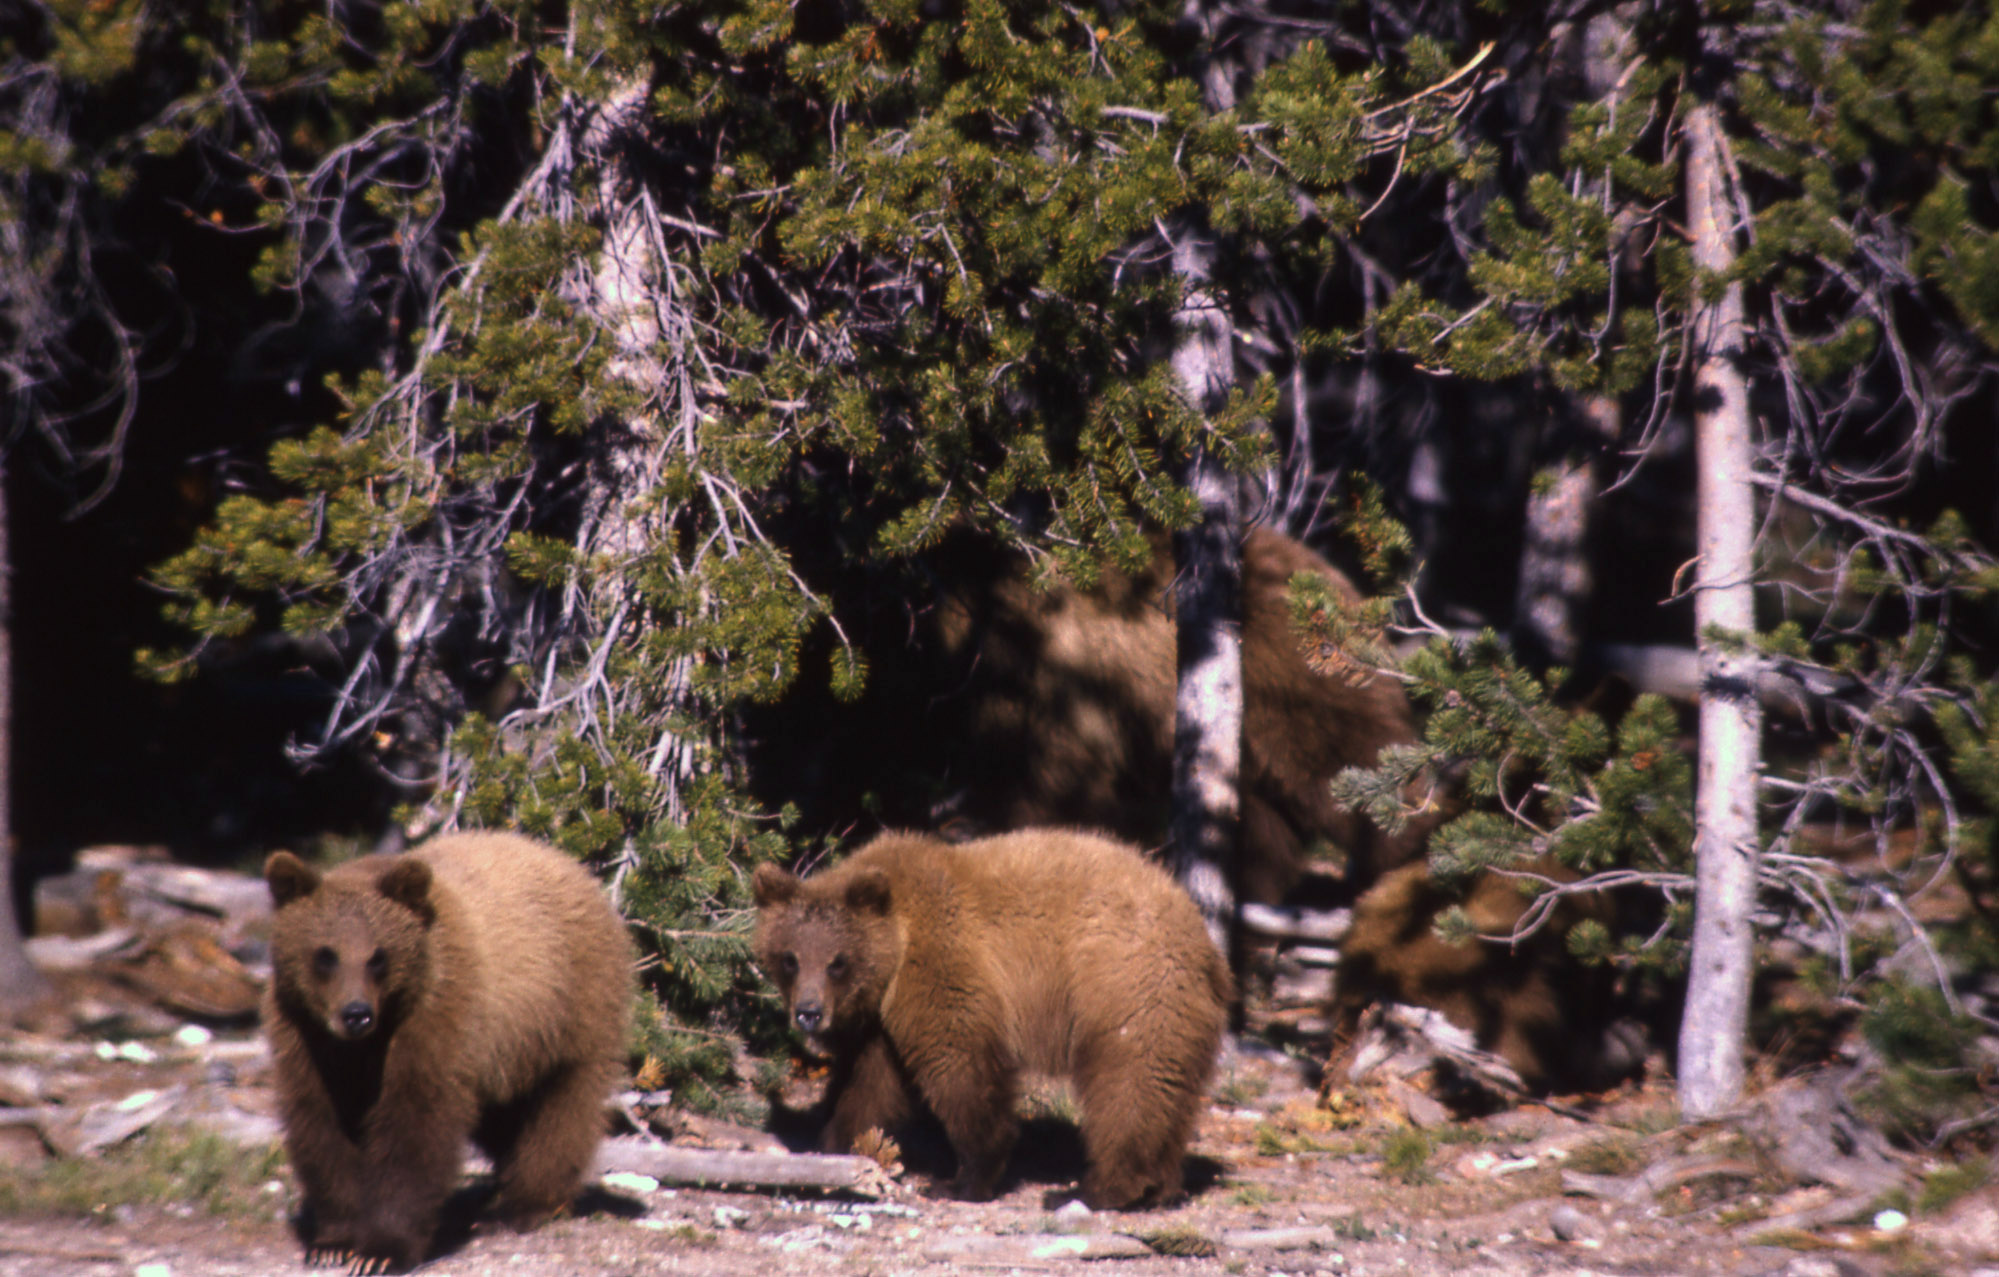 Tribes seek consultation on status of Yellowstone grizzly bear